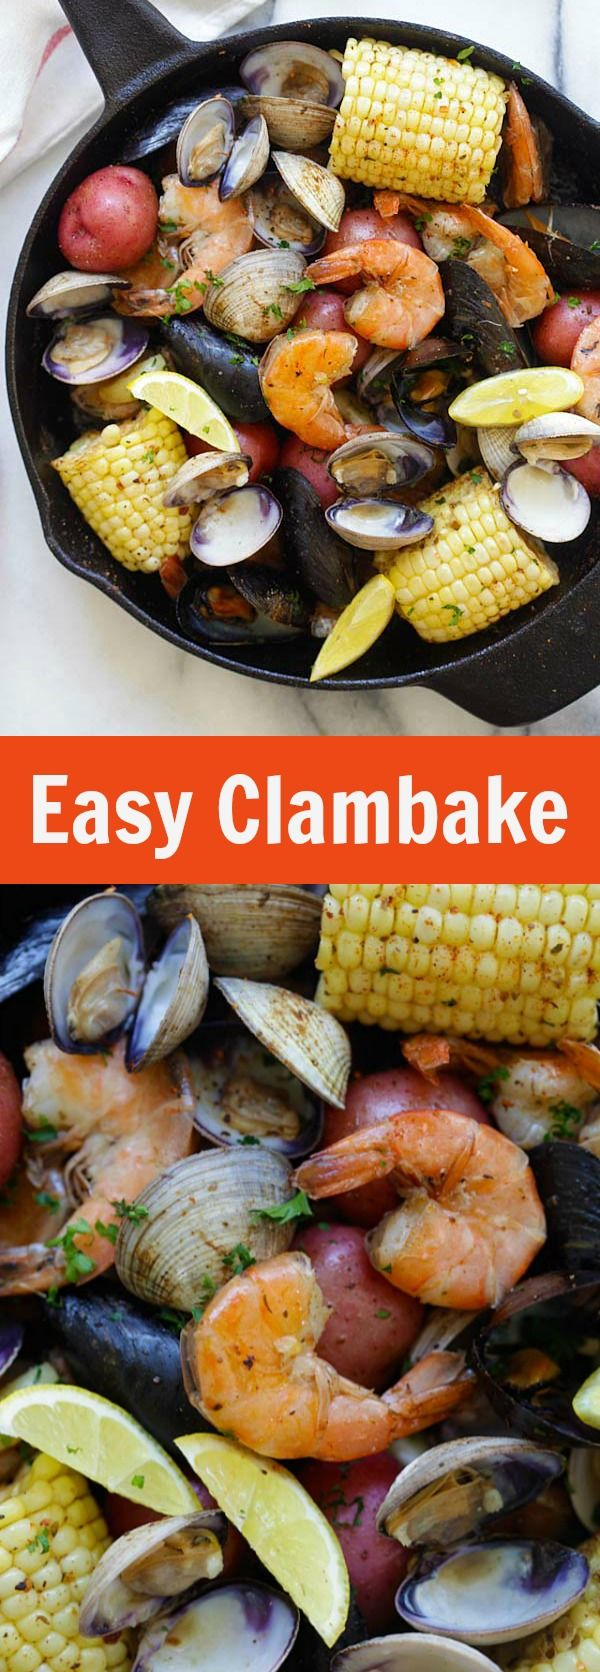 Clambake - the easiest and no-fuss clambake recipe ever, cooked on a ...